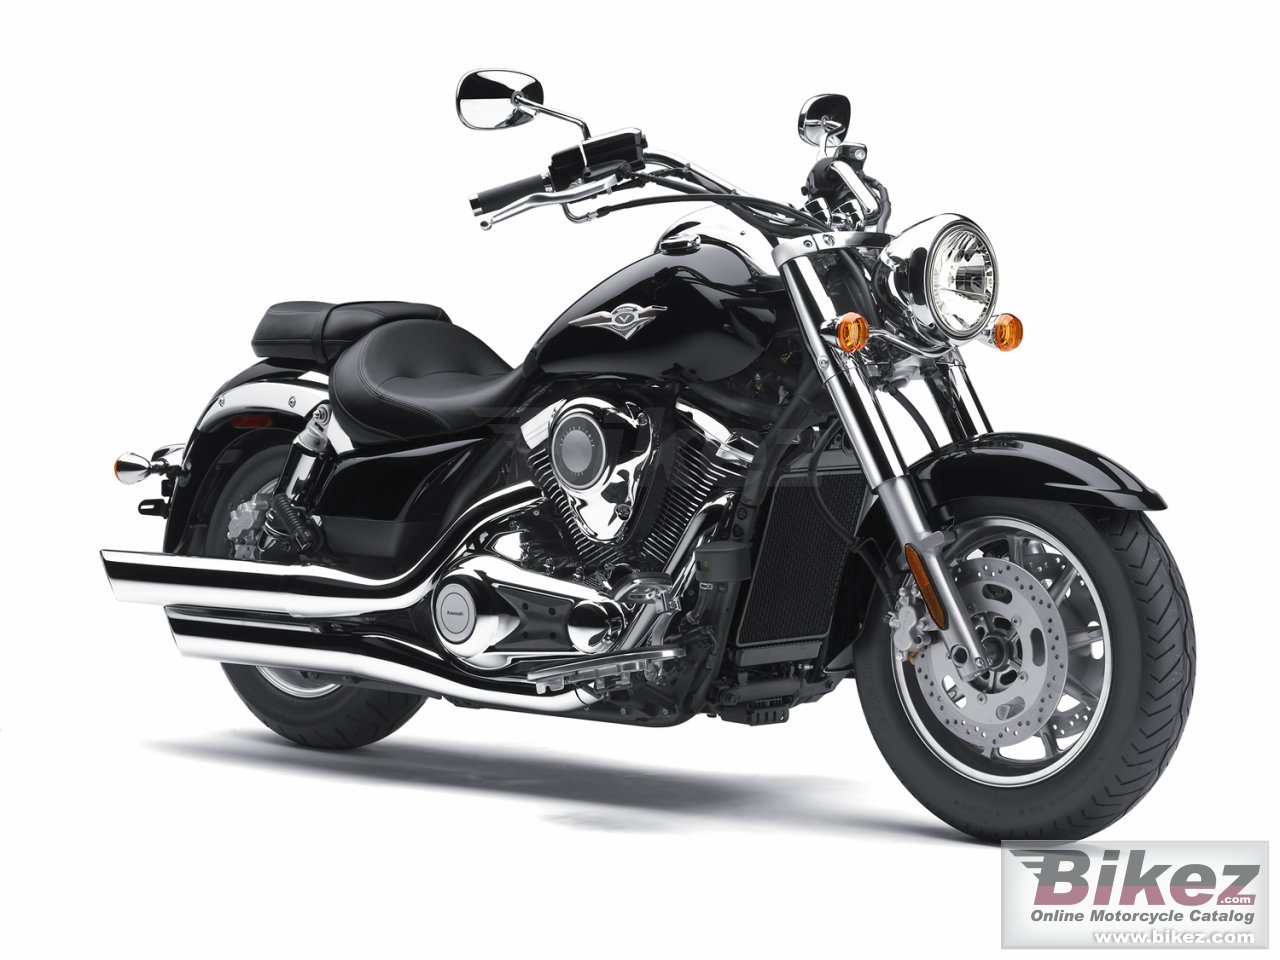 Big Kawasaki vulcan 1700 classic picture and wallpaper from Bikez.com